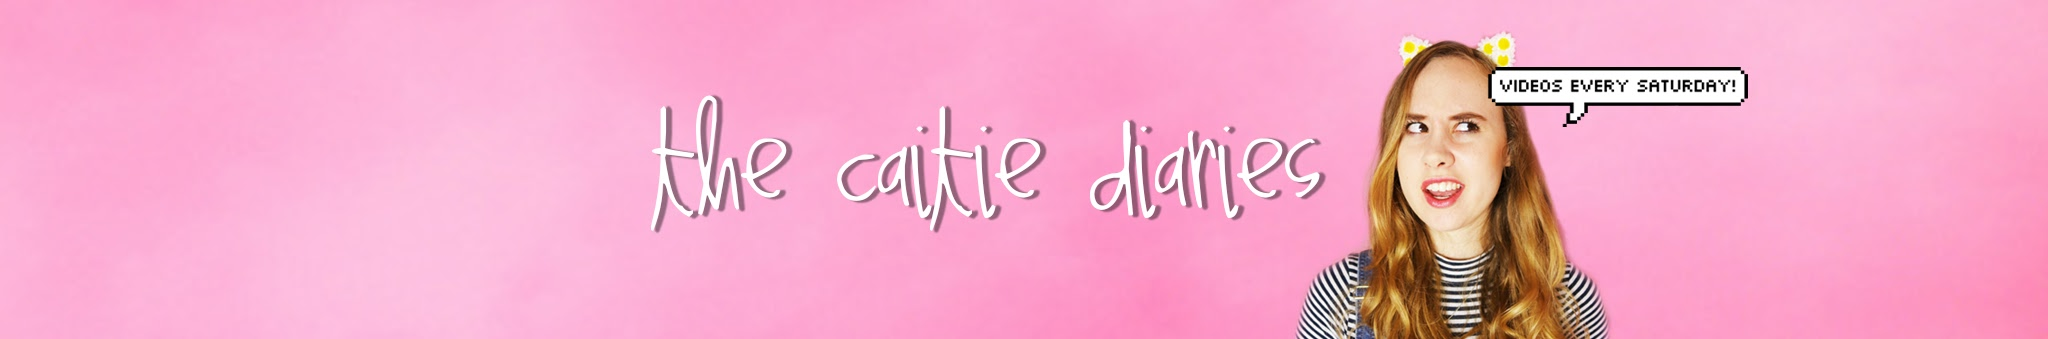 The Caitie Diaries YouTube Banner